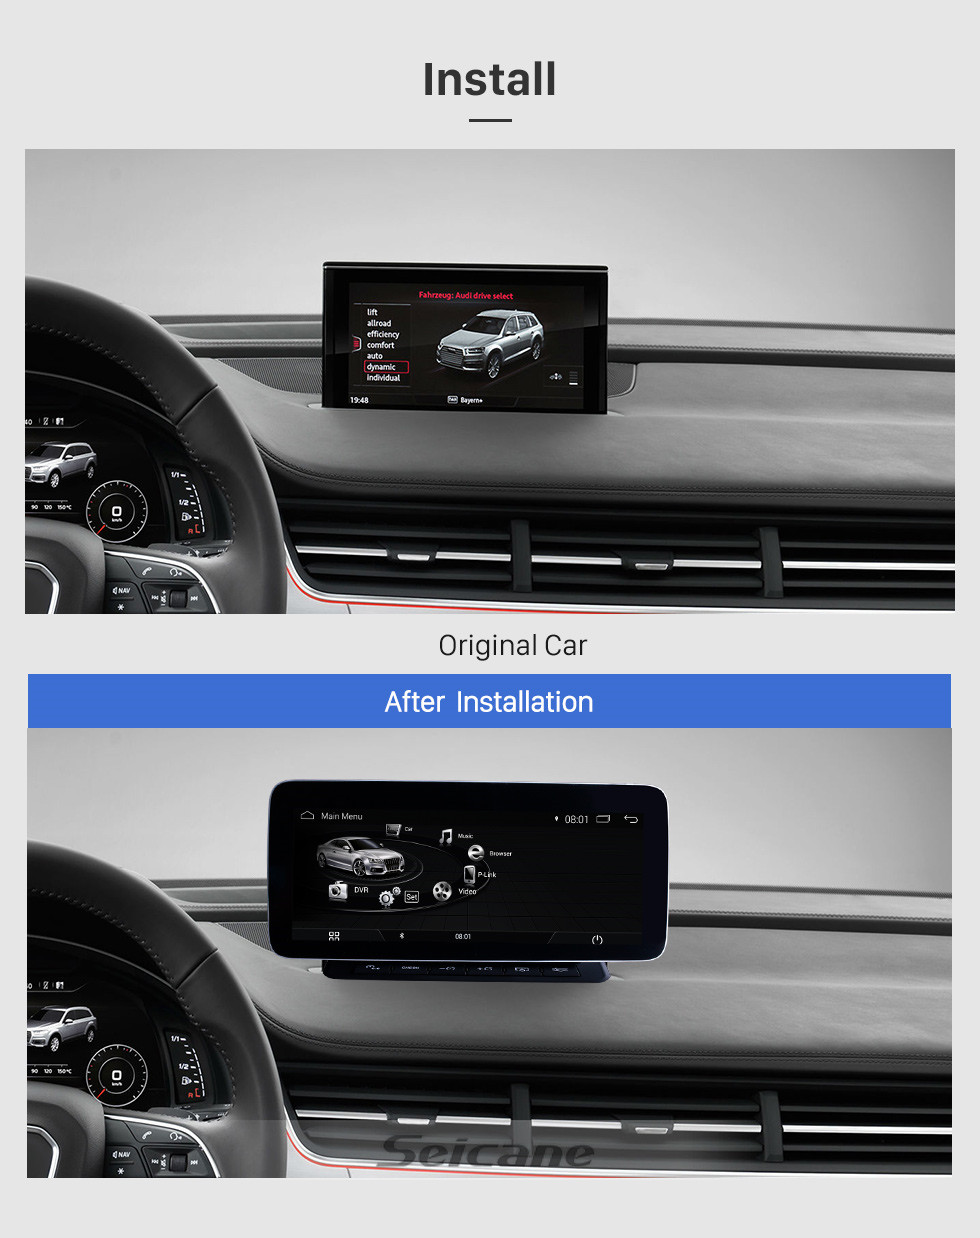 Seicane 10.25 Inch 2006-2015 AUDI Q7 Android 9.0 Car Head Unit GPS Navigation System Radio Stereo with touchscreen WIFI FM AM Bluetooth music Support Steering Wheel Control Rearview Camera USB